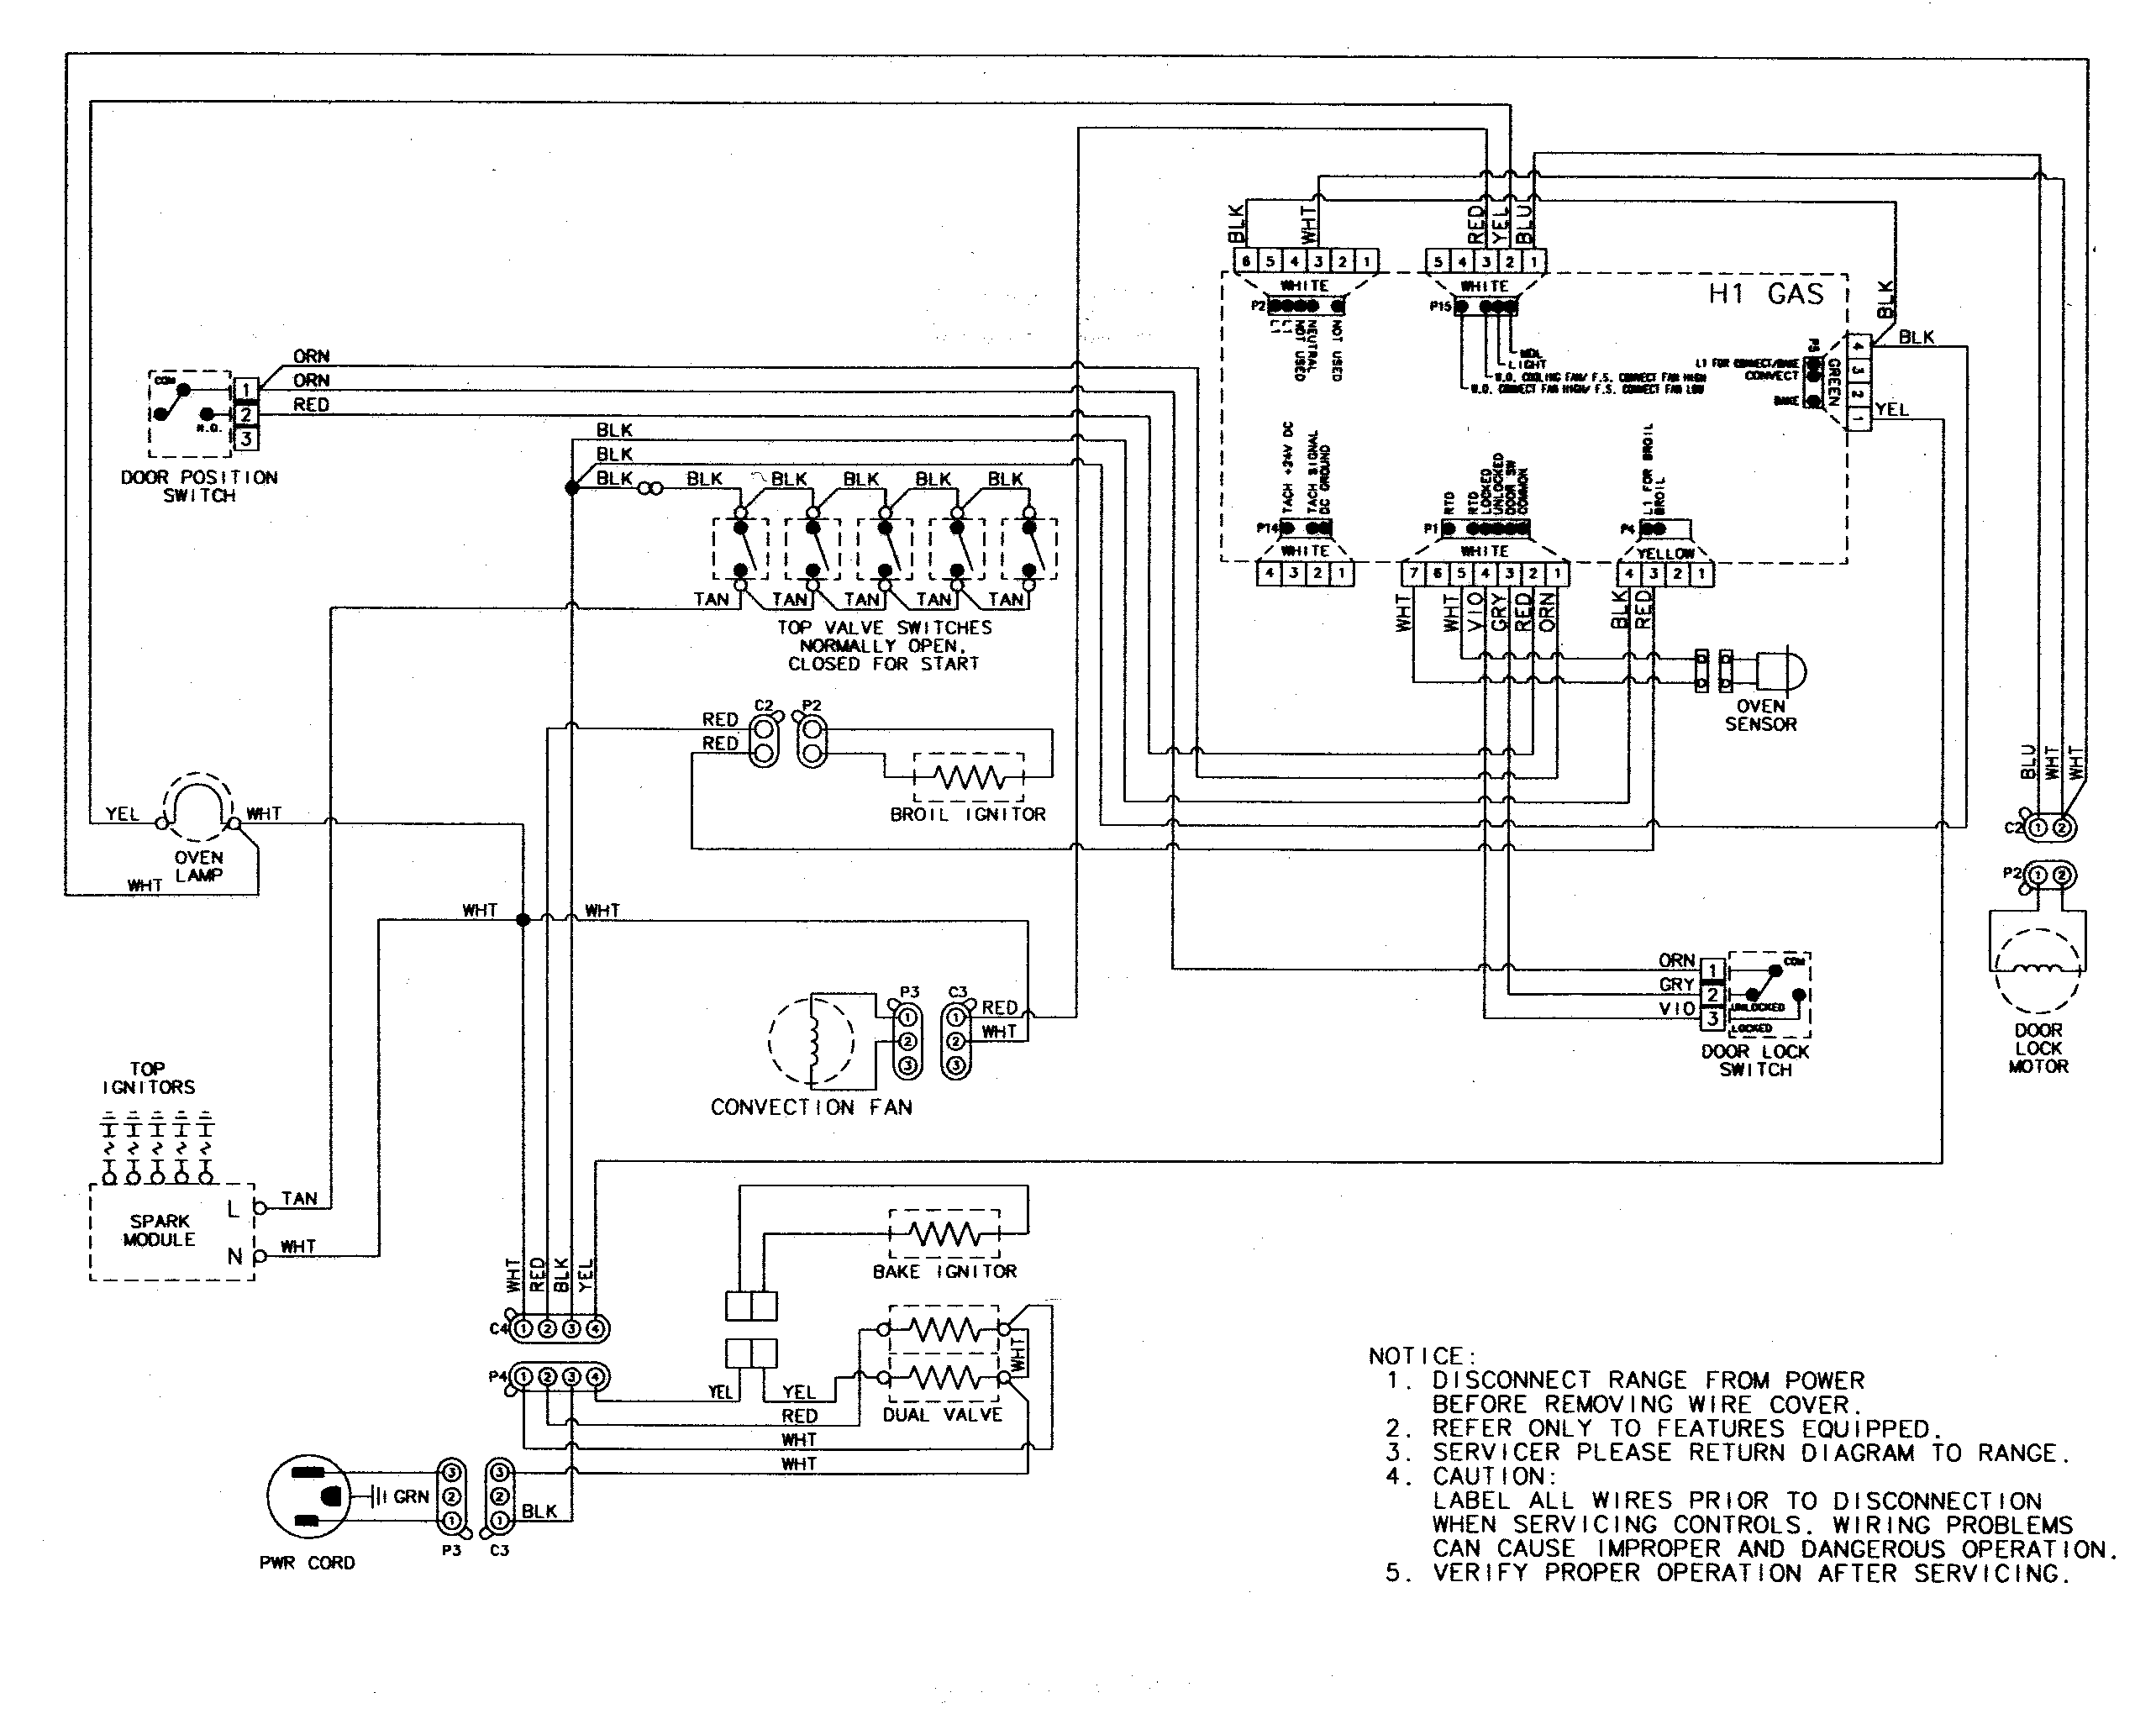 Induction Heater Circuit Diagram Download Not Lossing Wiring Cooker On Amana Agr5835qdq Freestanding Gas Range Timer Stove Lepel Plans